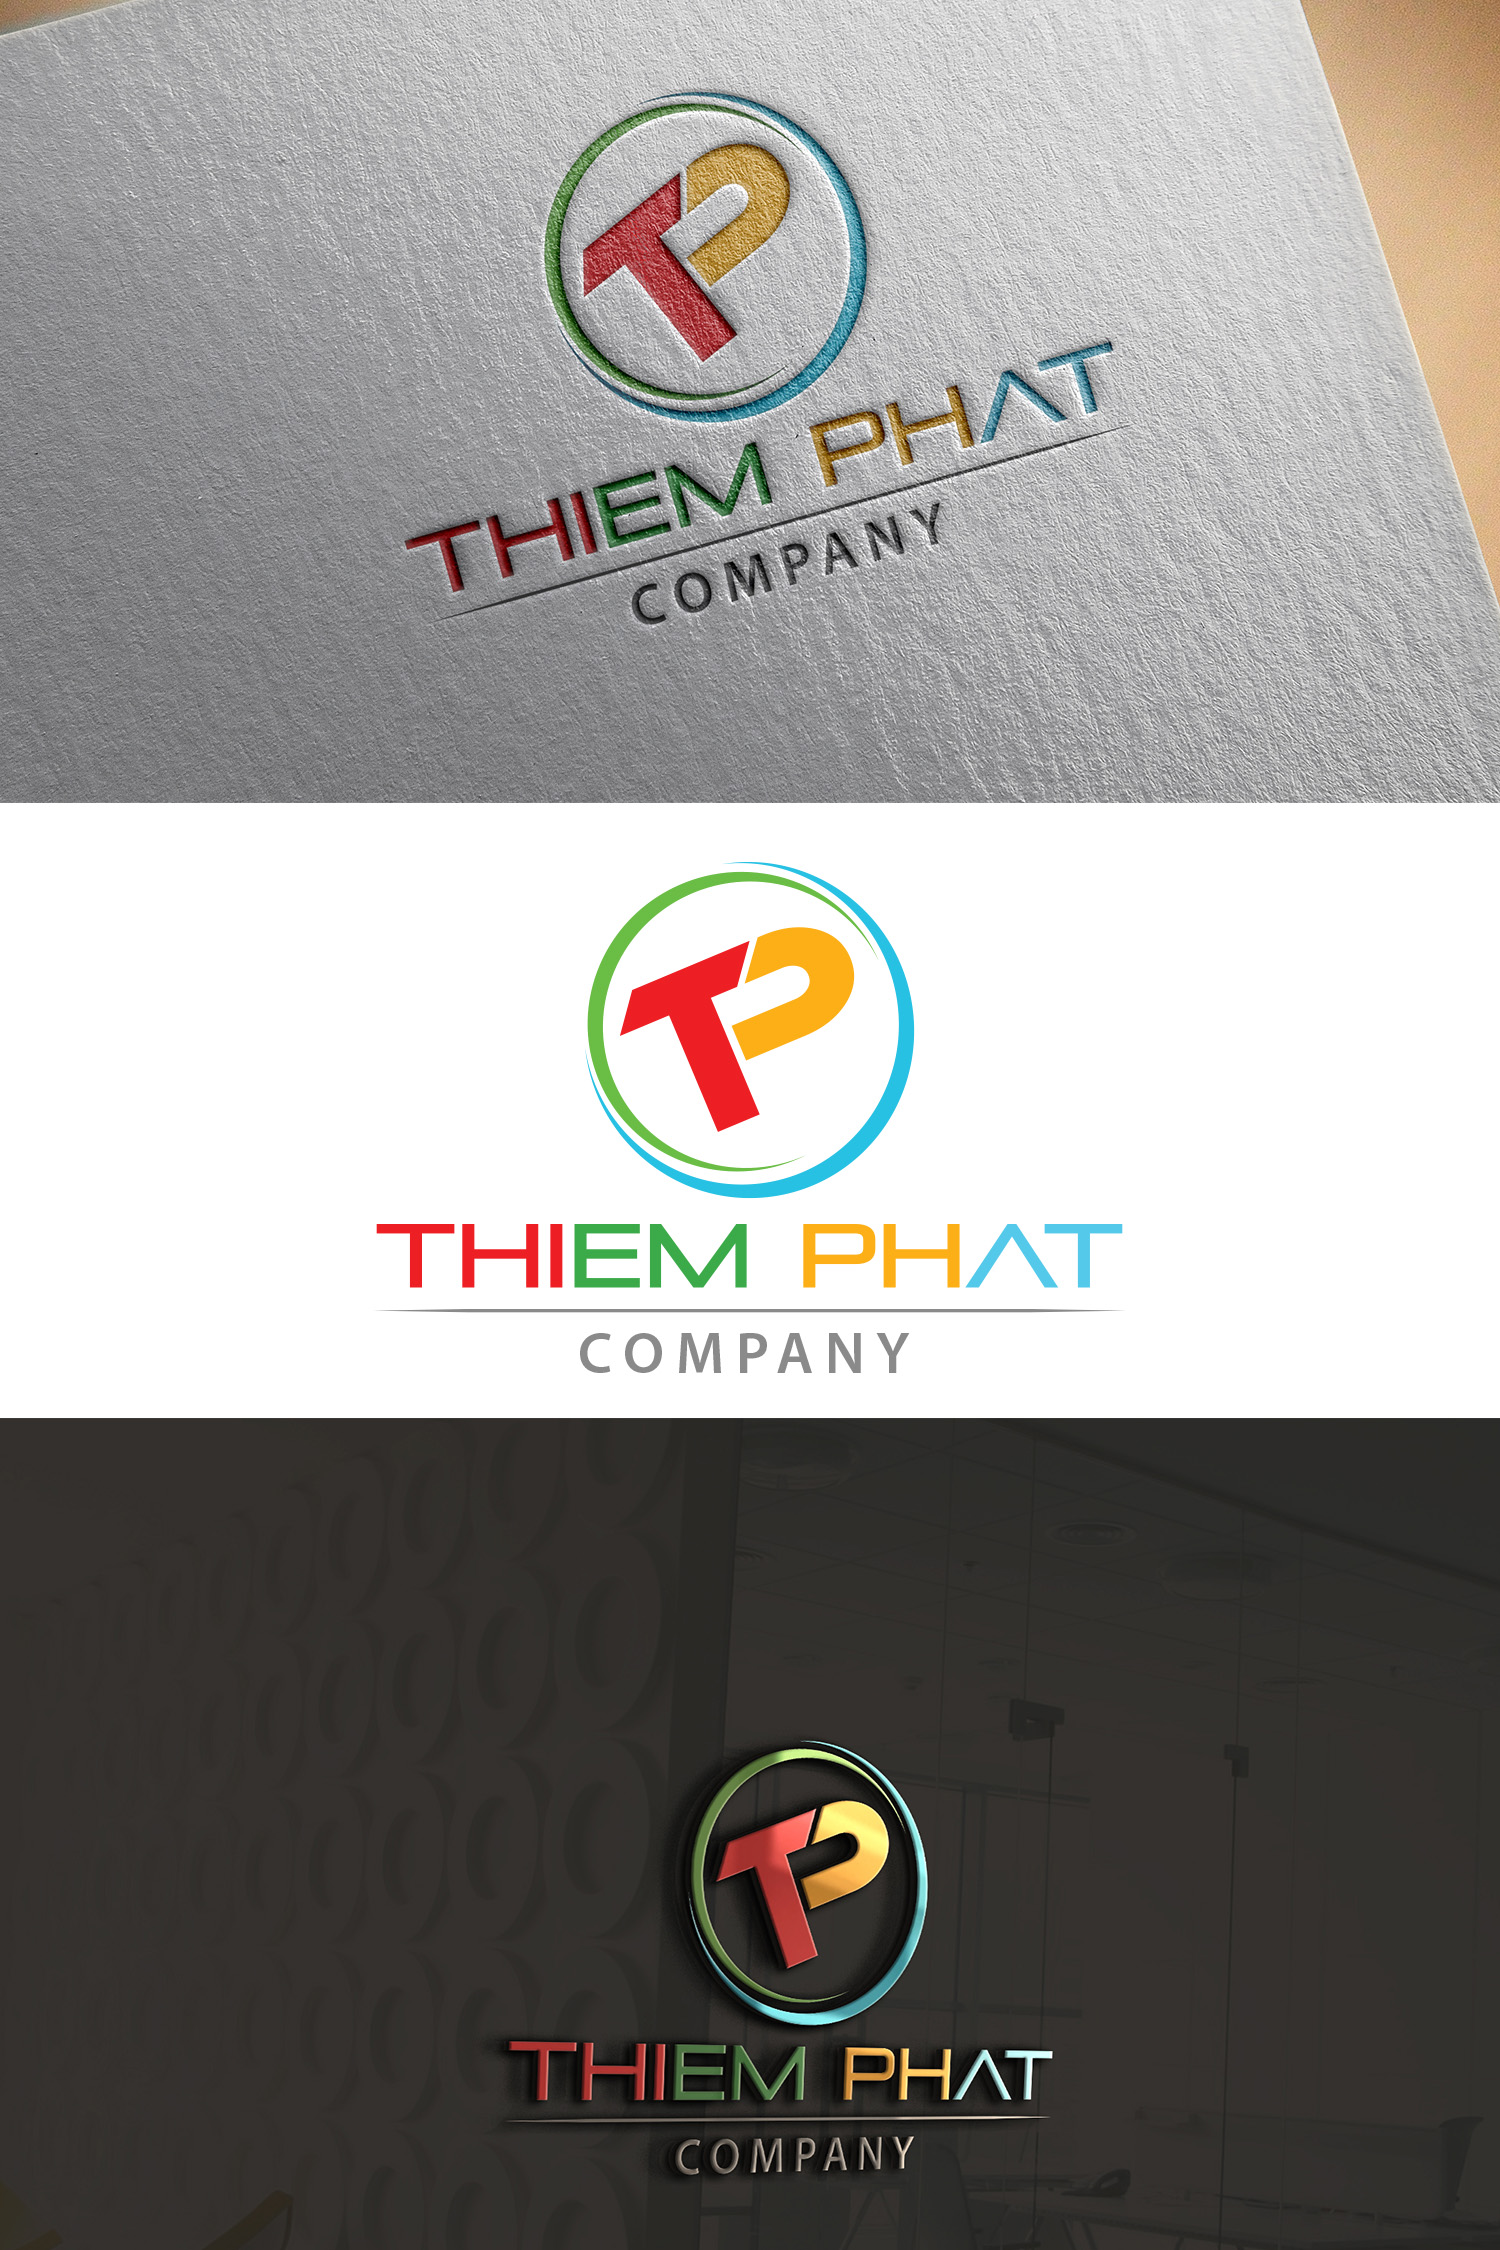 Logo Design by Umair ahmed Iqbal - Entry No. 192 in the Logo Design Contest New Logo Design for Thiem Phat company.